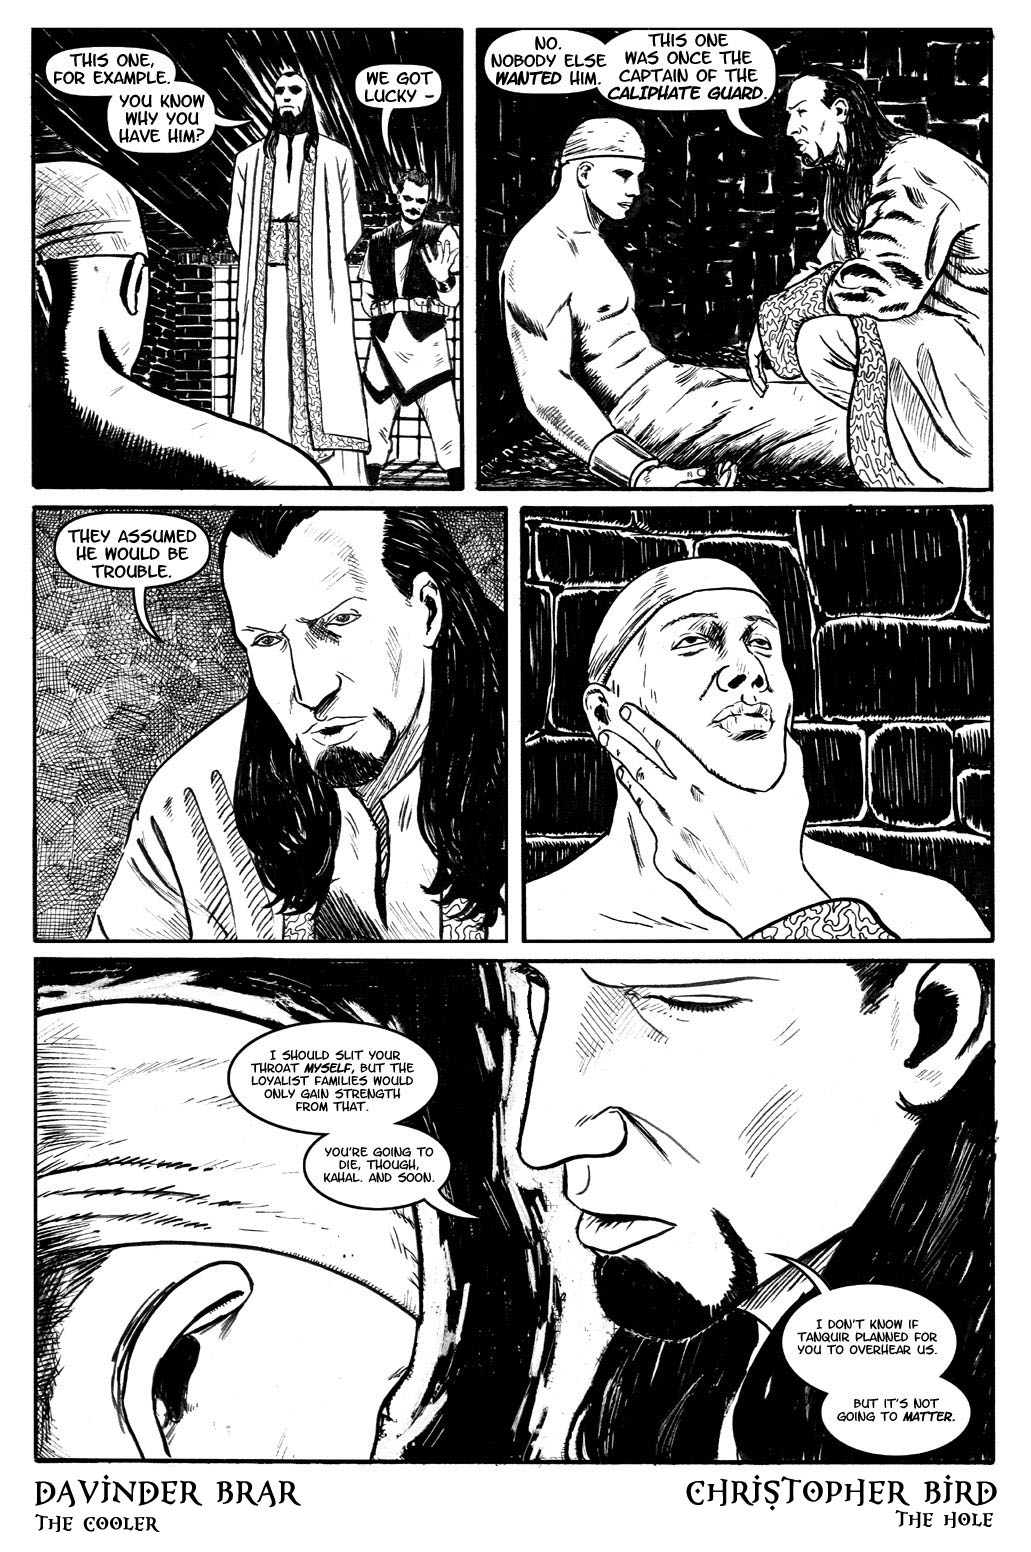 Book 2, page 12